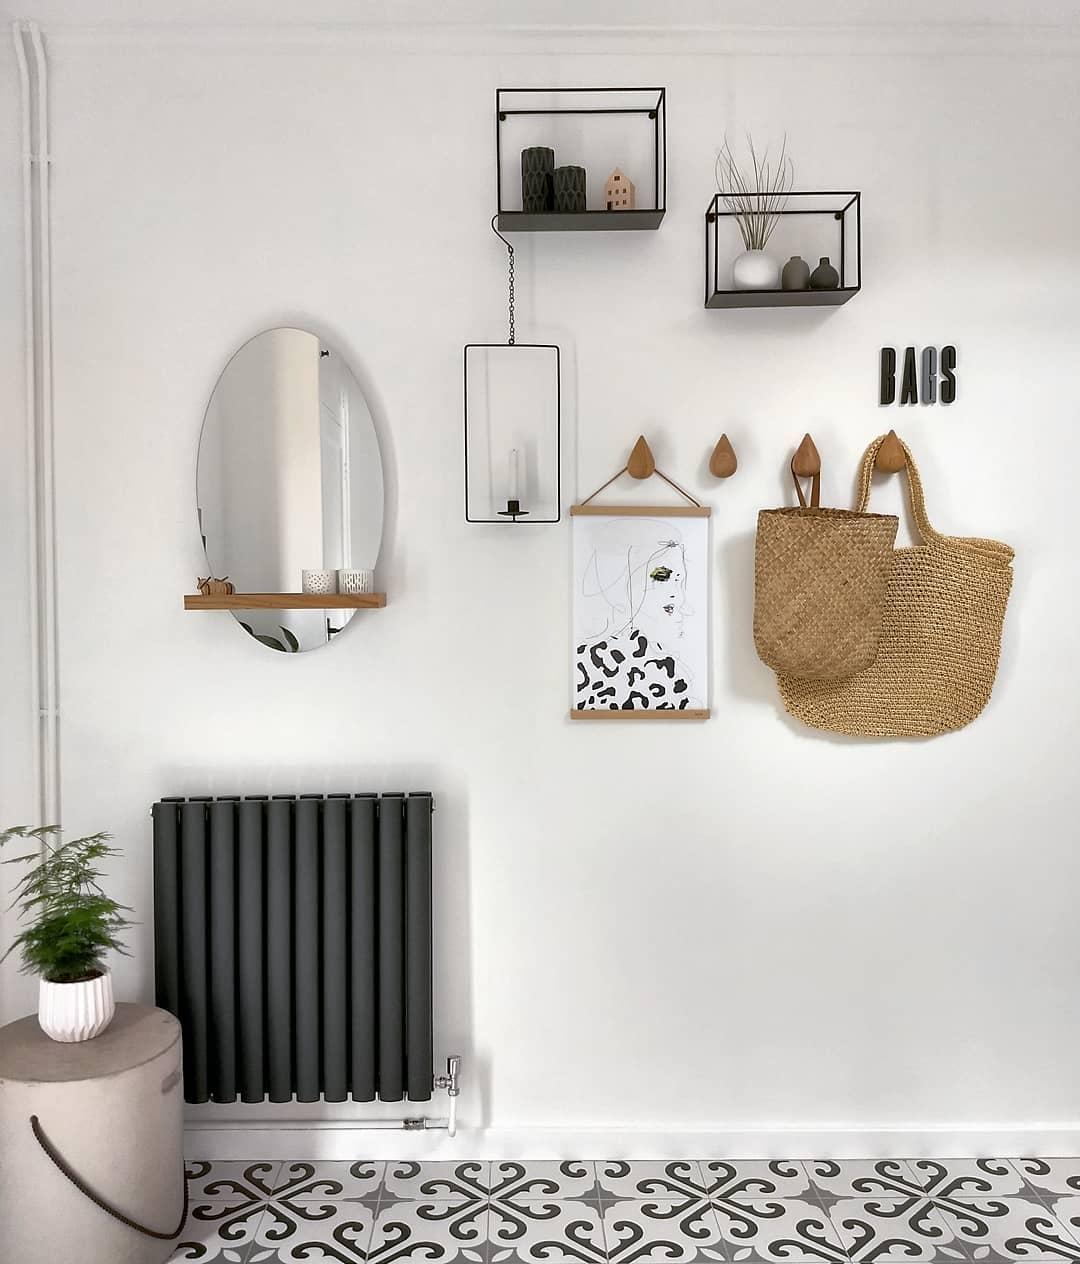 Milano Aruba designer radiator on a white wall.